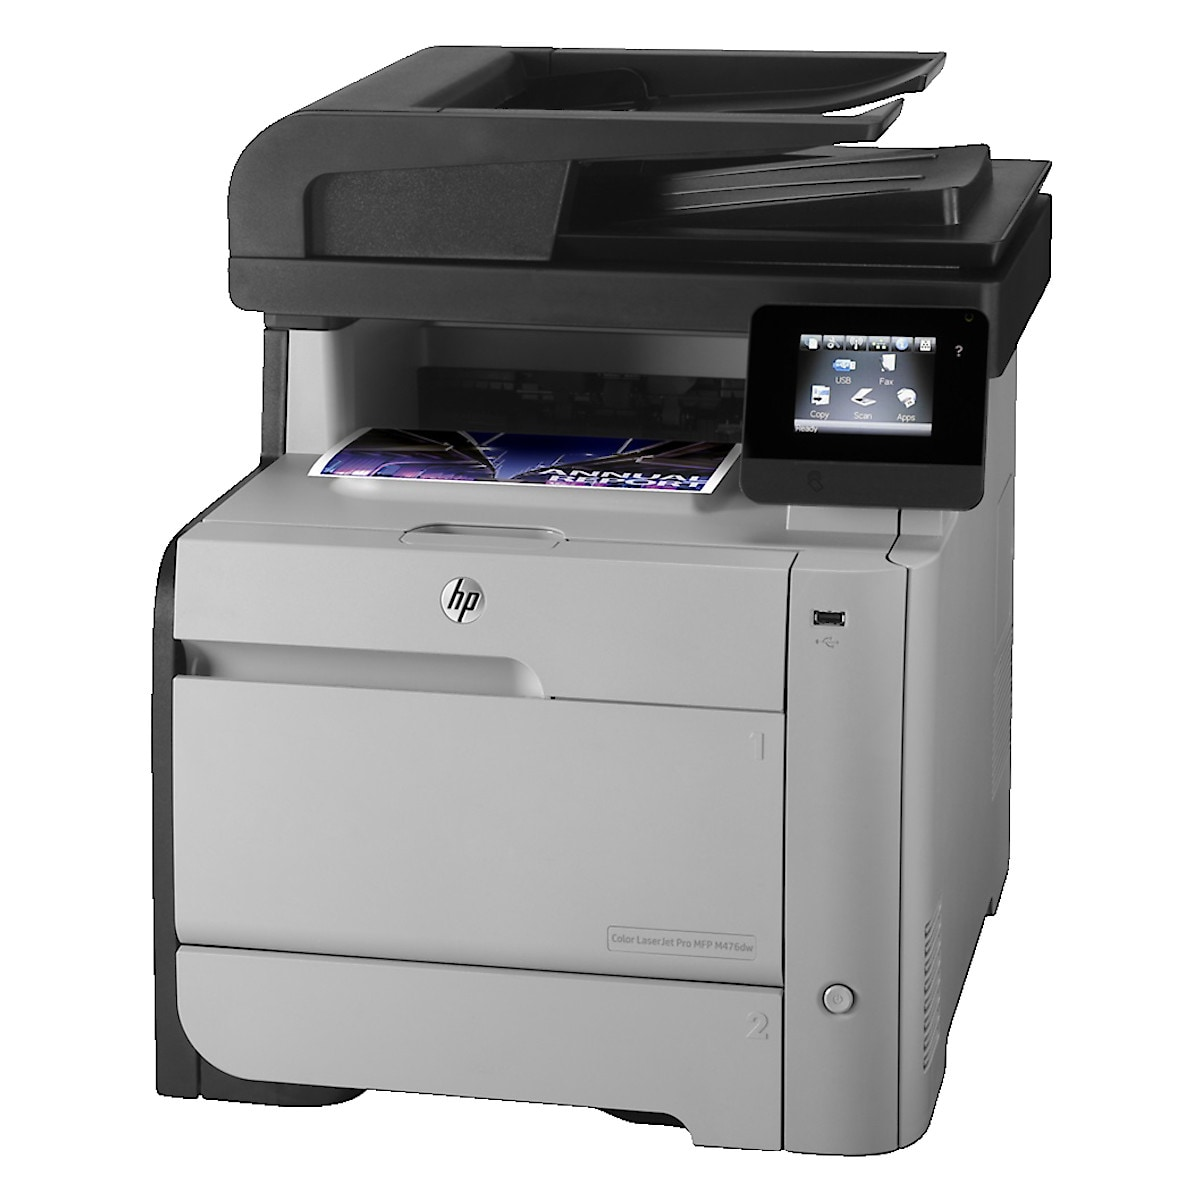 HP Color LaserJet Pro MFP M476dw Laser Printer